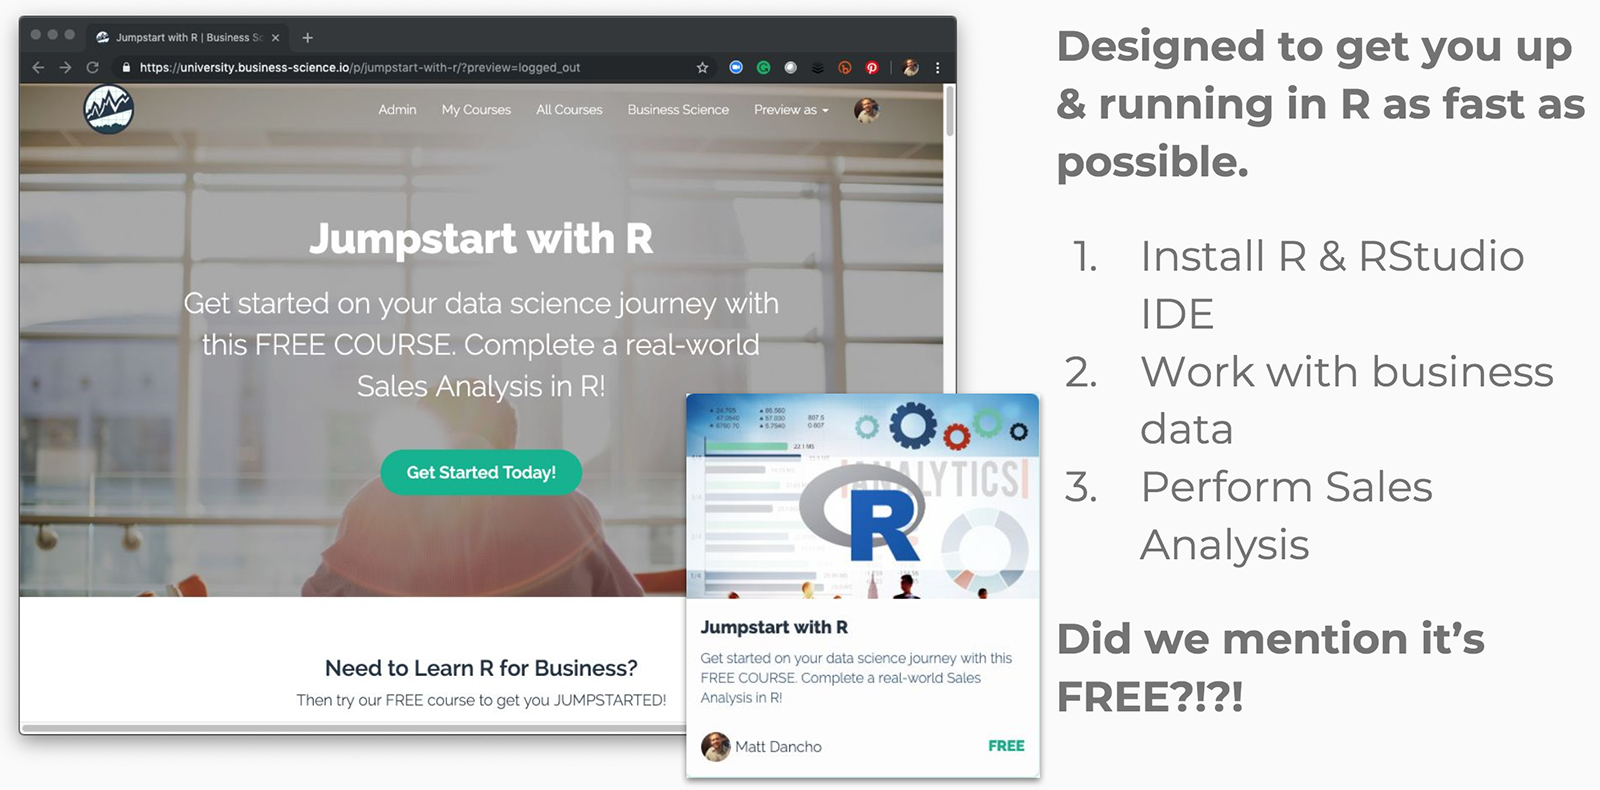 Free data science course: Jumpstart with R